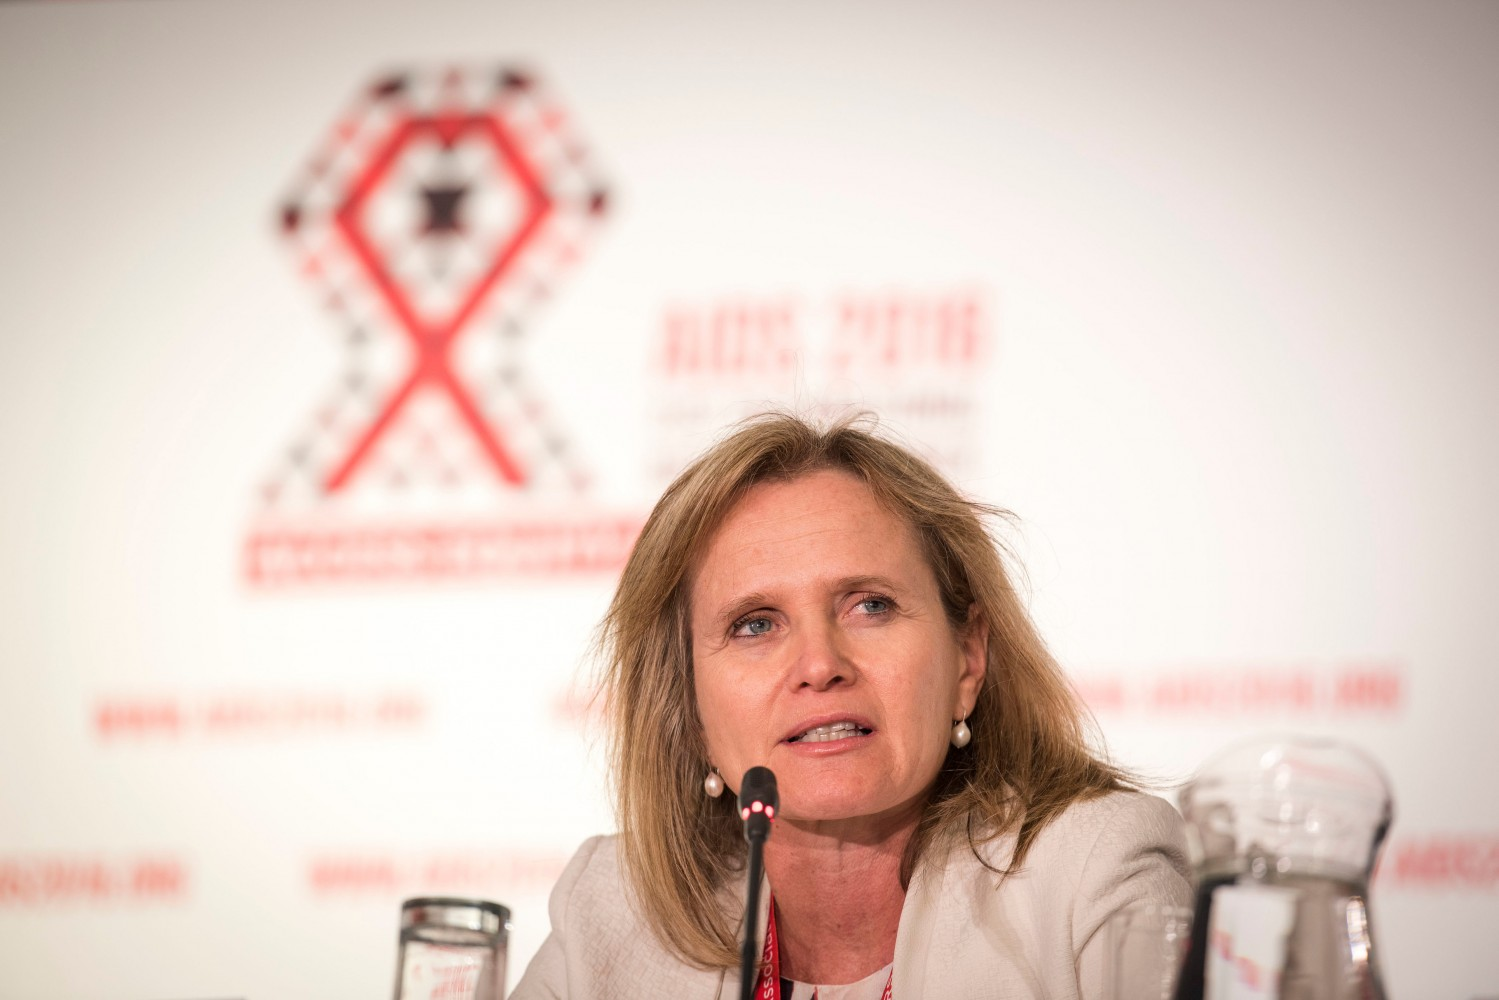 Sharon Lewin announced as co-chair of the IAS Towards an HIV Cure